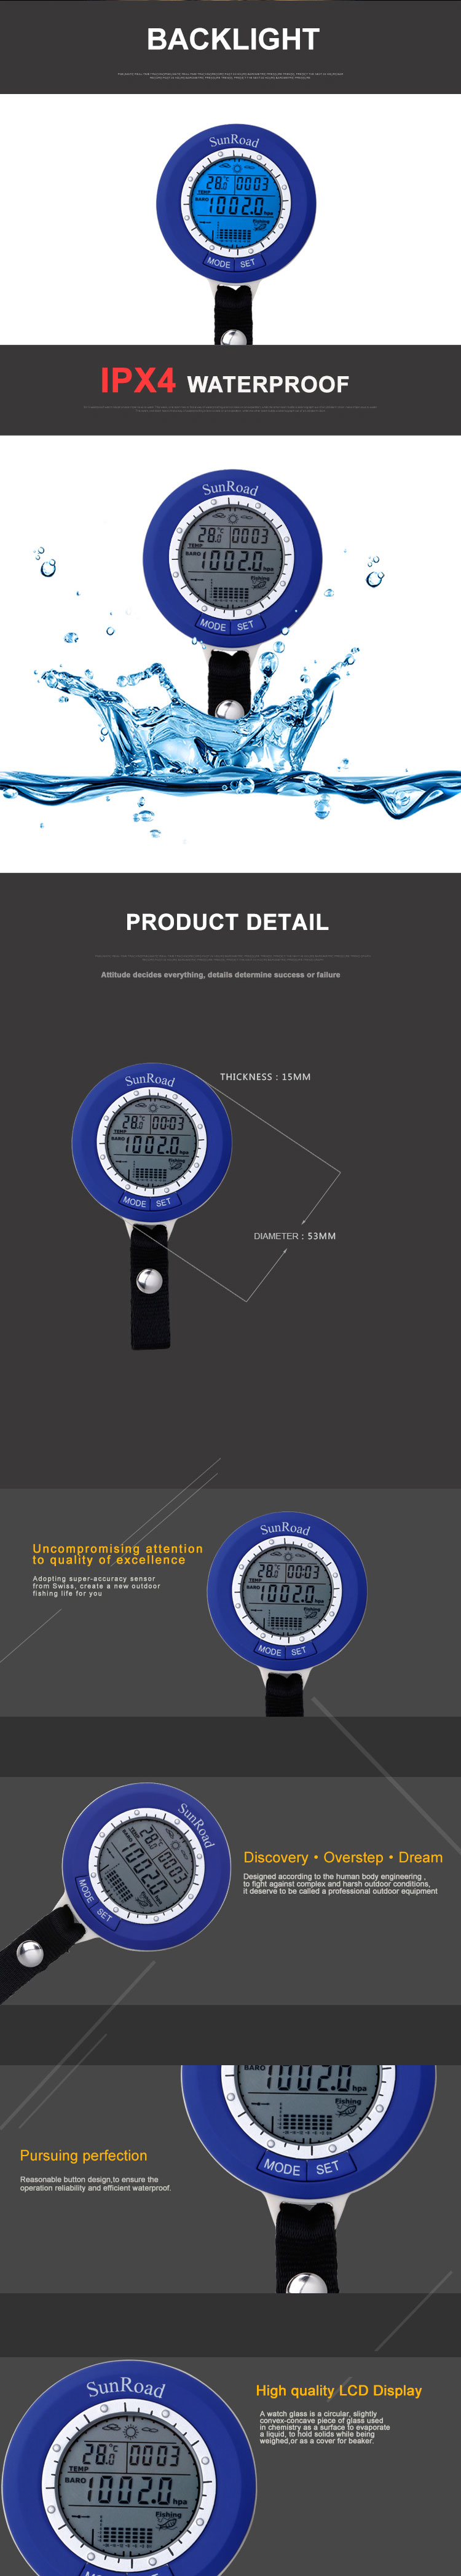 Sunroad SR204 Fishing Digital Barometer Multifunction IPX 4 Waterproof Barometer Thermometer Timer